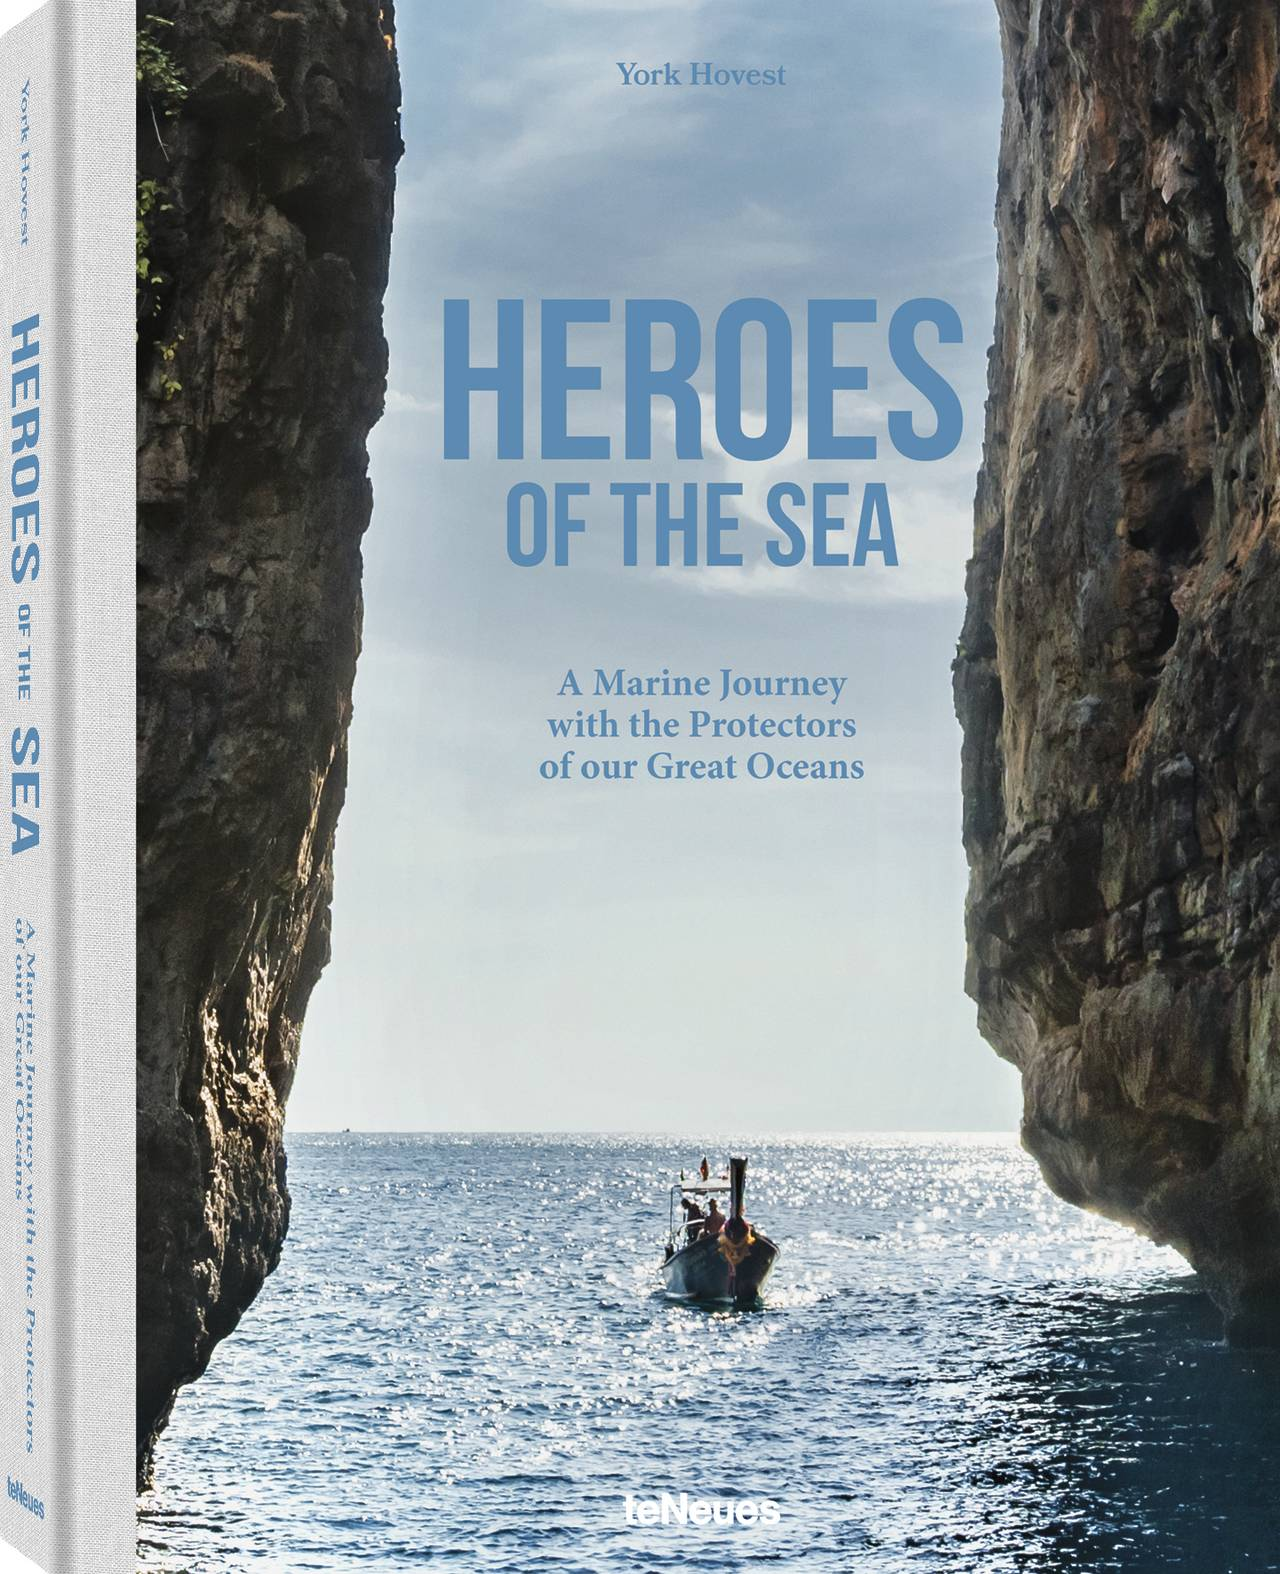 © Heroes of the Sea by York Hovest, published by teNeues, www.teneues.com, www.heroesofthesea.com, Photo © 2019 York Hovest. All rights reserved.